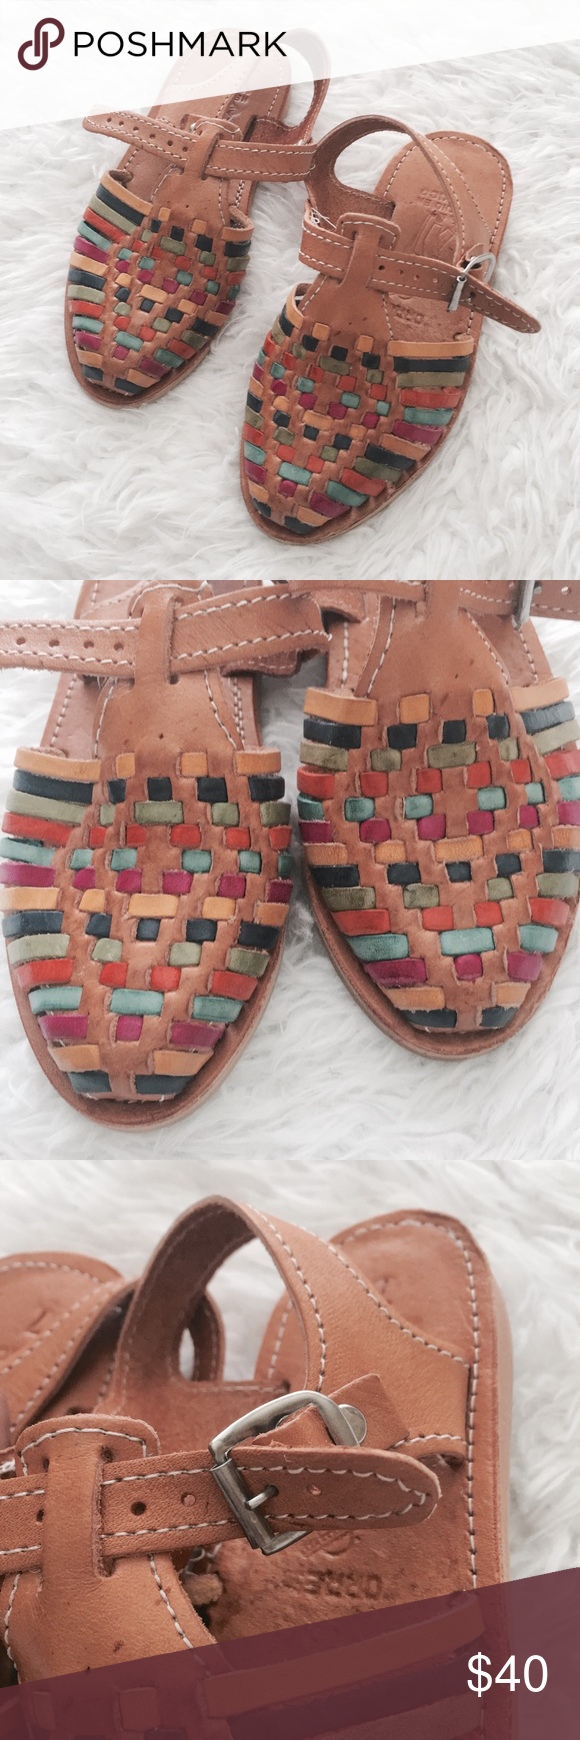 e4b8fa4fe83839 NWOT Kids Genuine Leather Mexican Huaraches Baby Toddler girls. Authentic